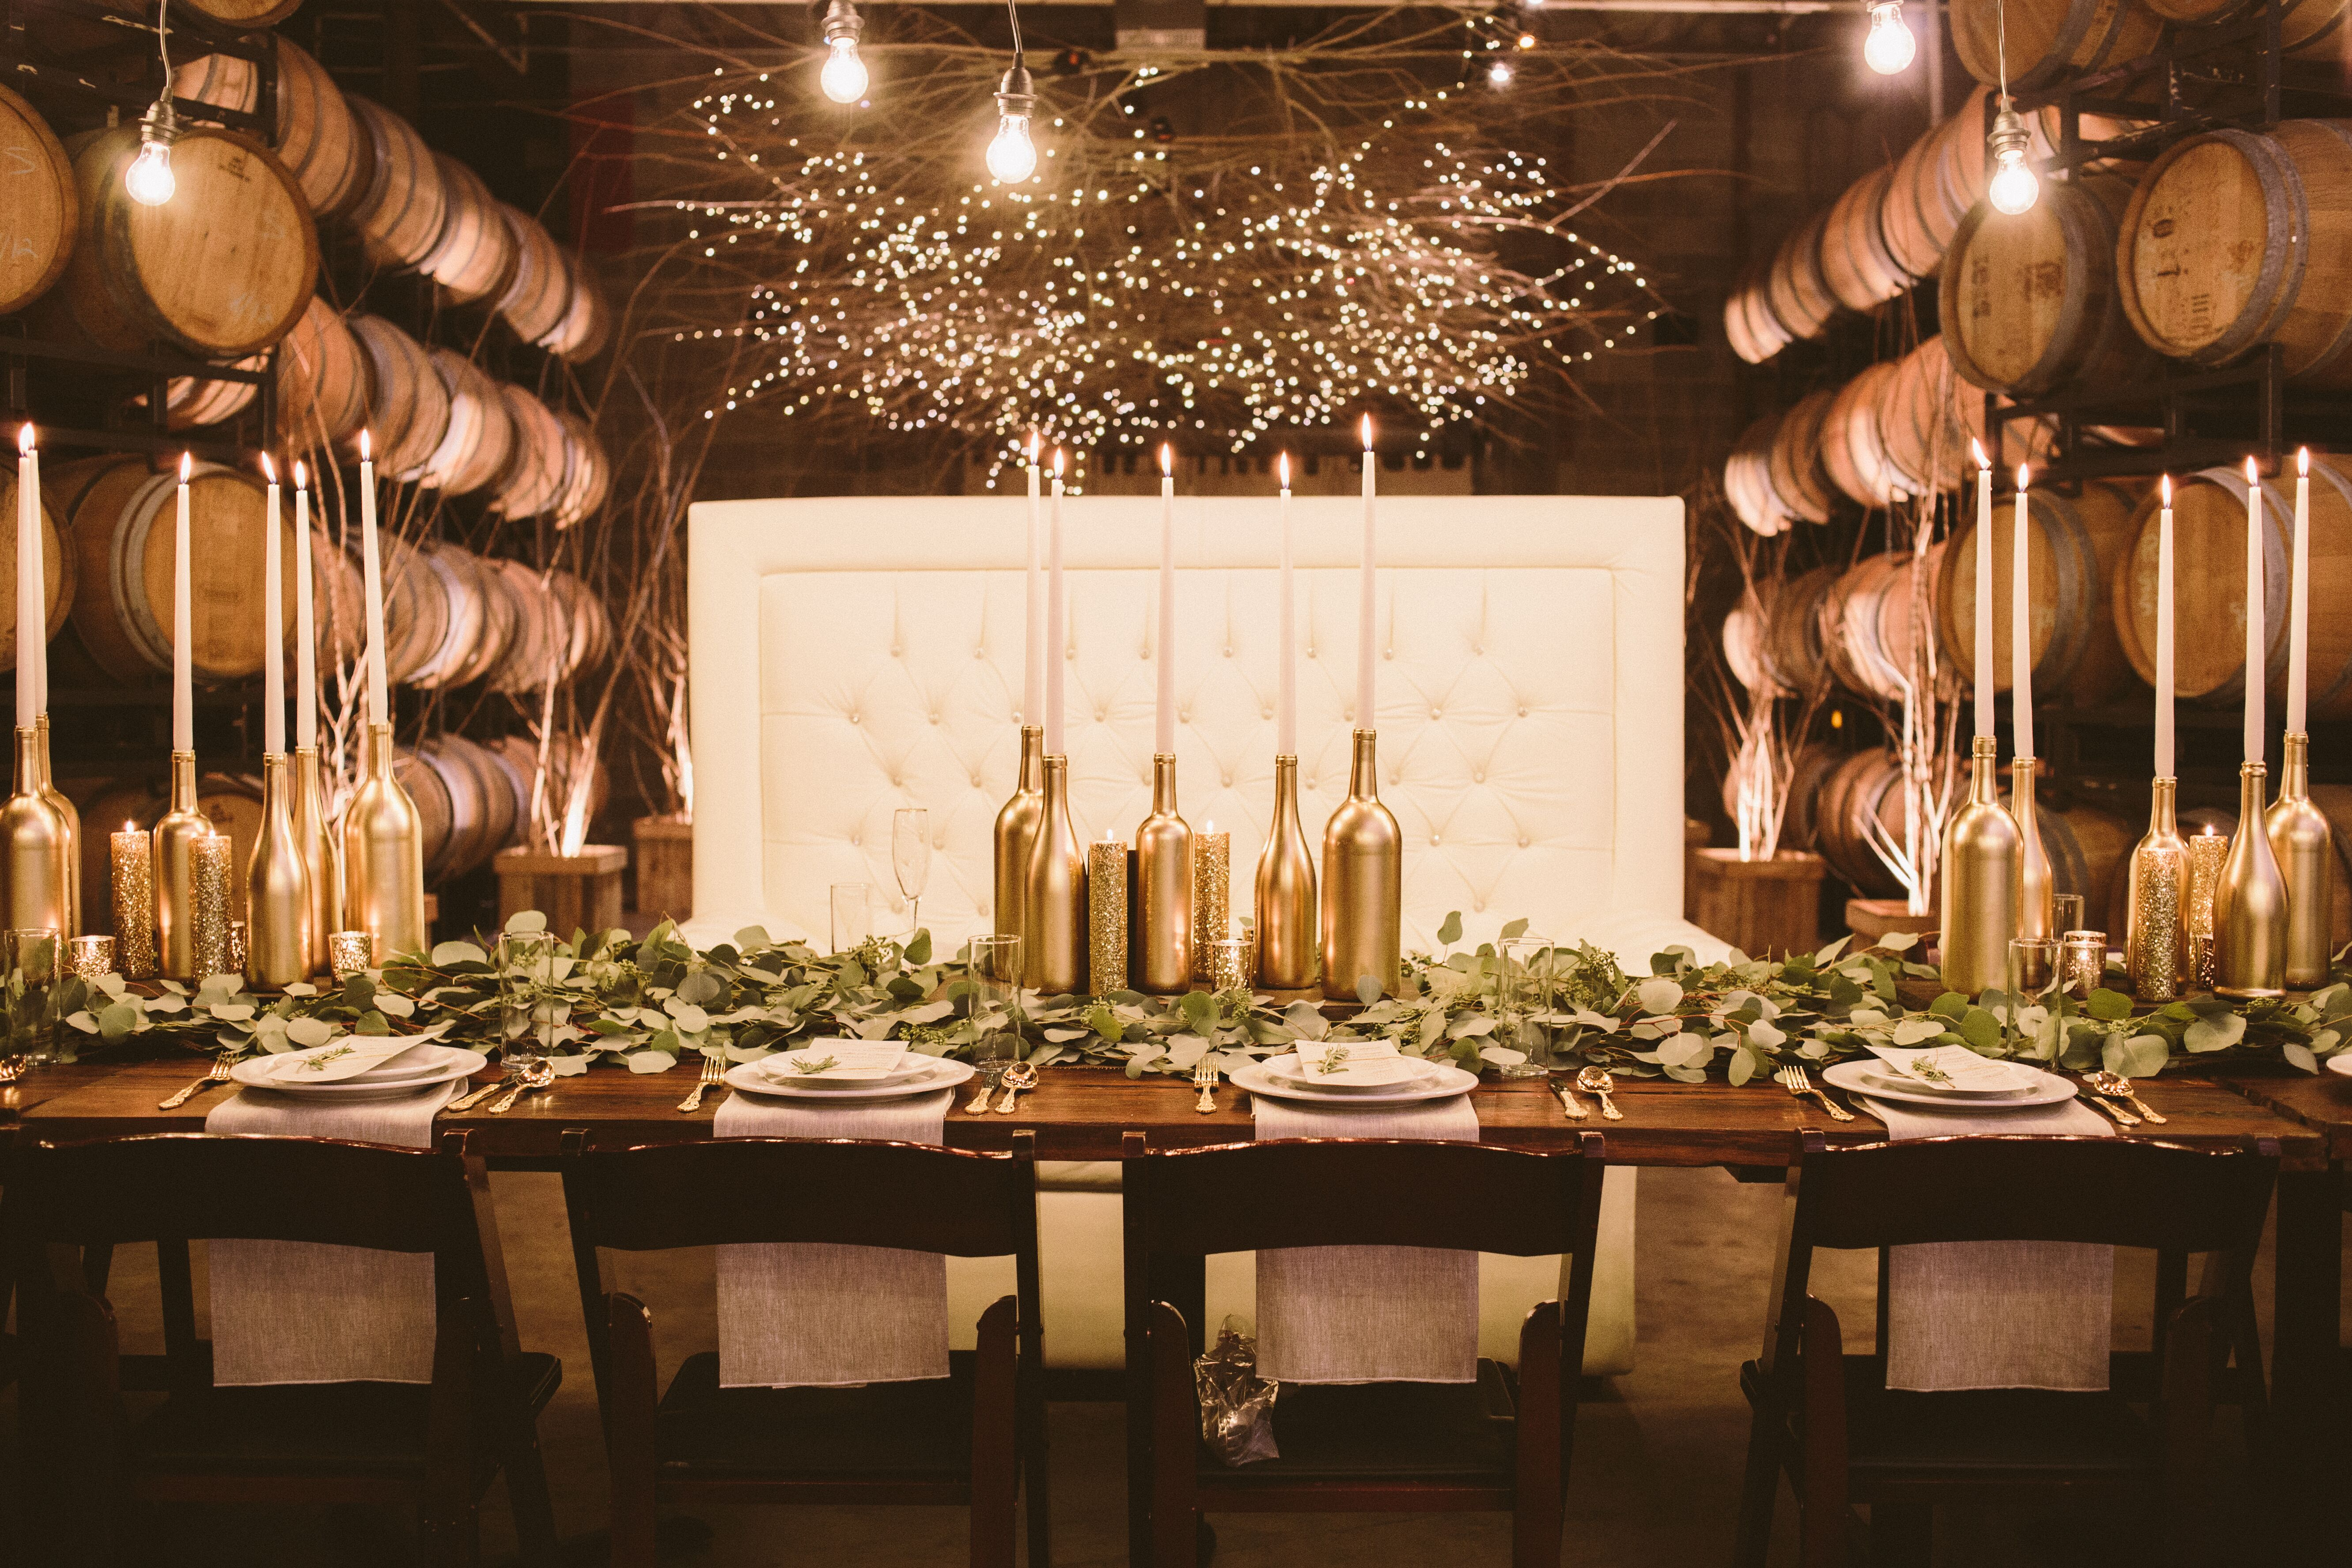 Diy gold wine bottle candlesticks centerpieces for Wine and paint orlando